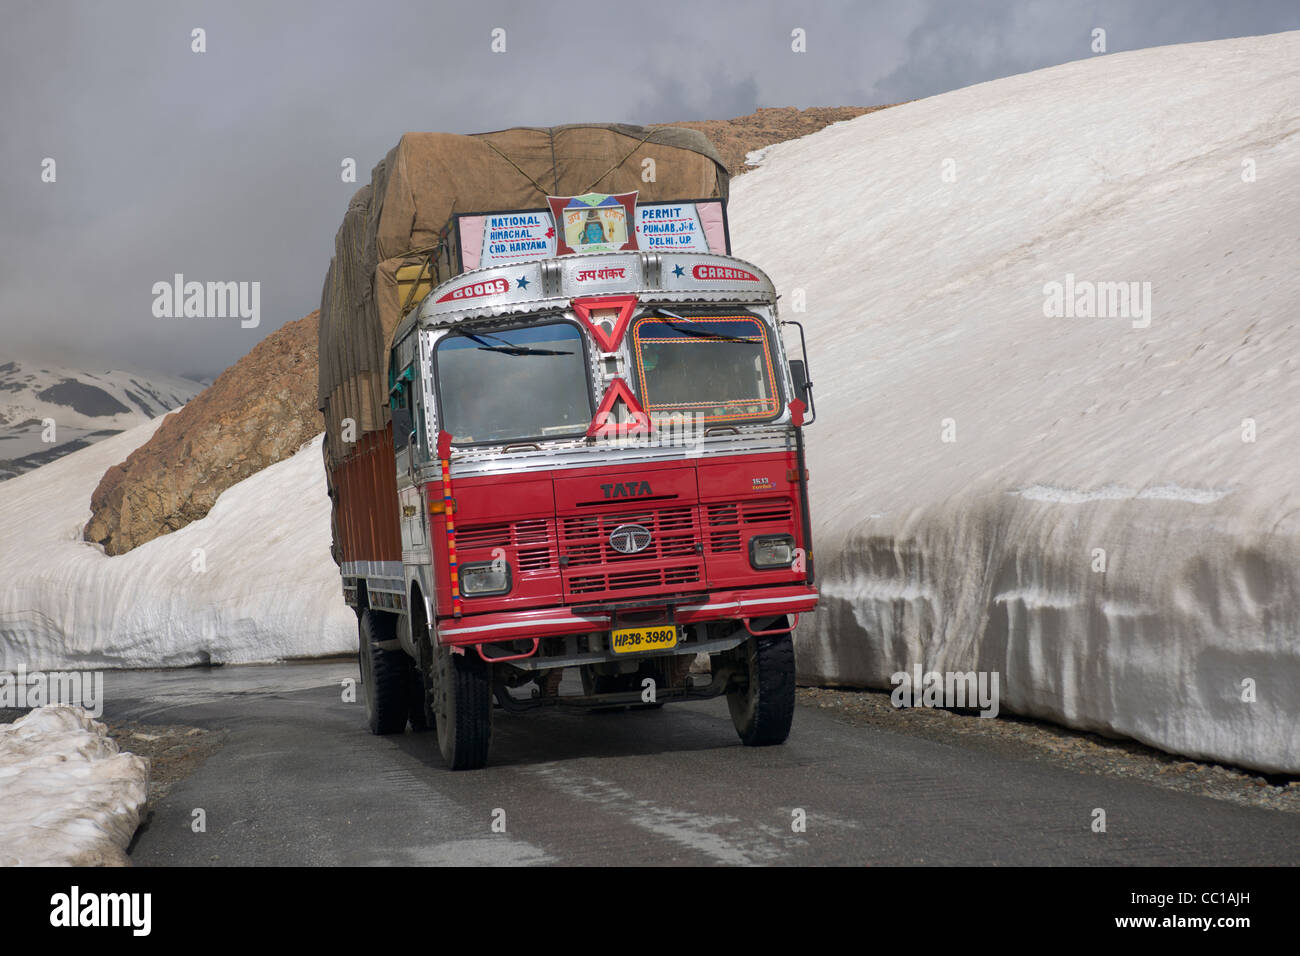 Tata truck driving past snow drifts by the side of the road, Baralach La pass, Leh-Manali Highway, Himachal Pradesh, - Stock Image